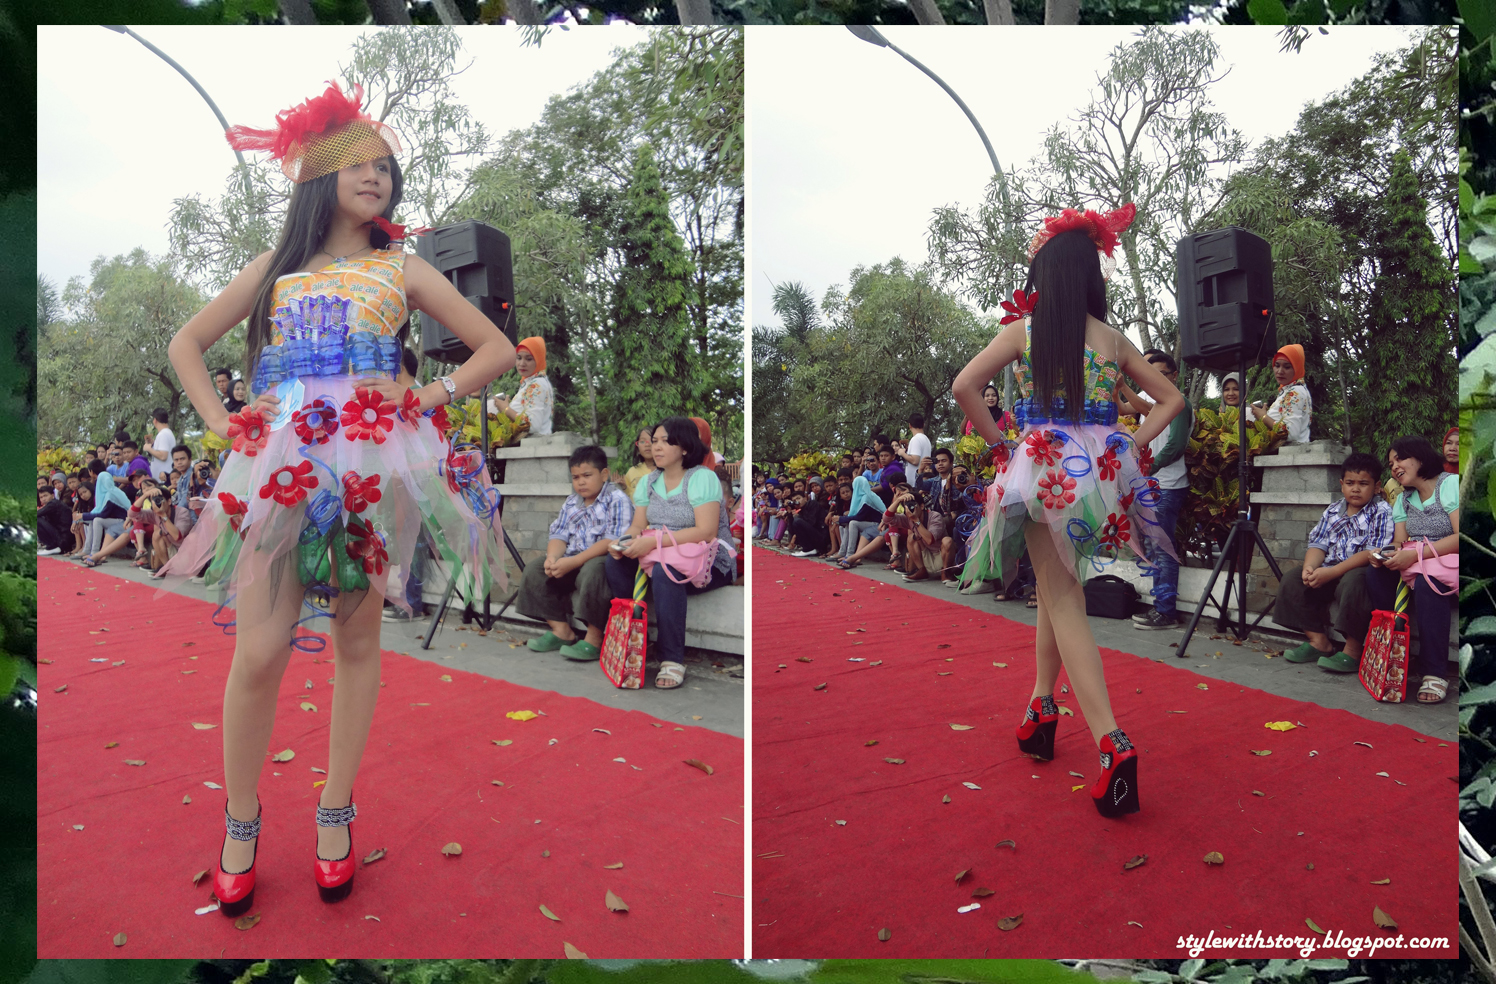 Desain Baju Dari Barang Bekas Style With Story Green Fashion On Red Carpet